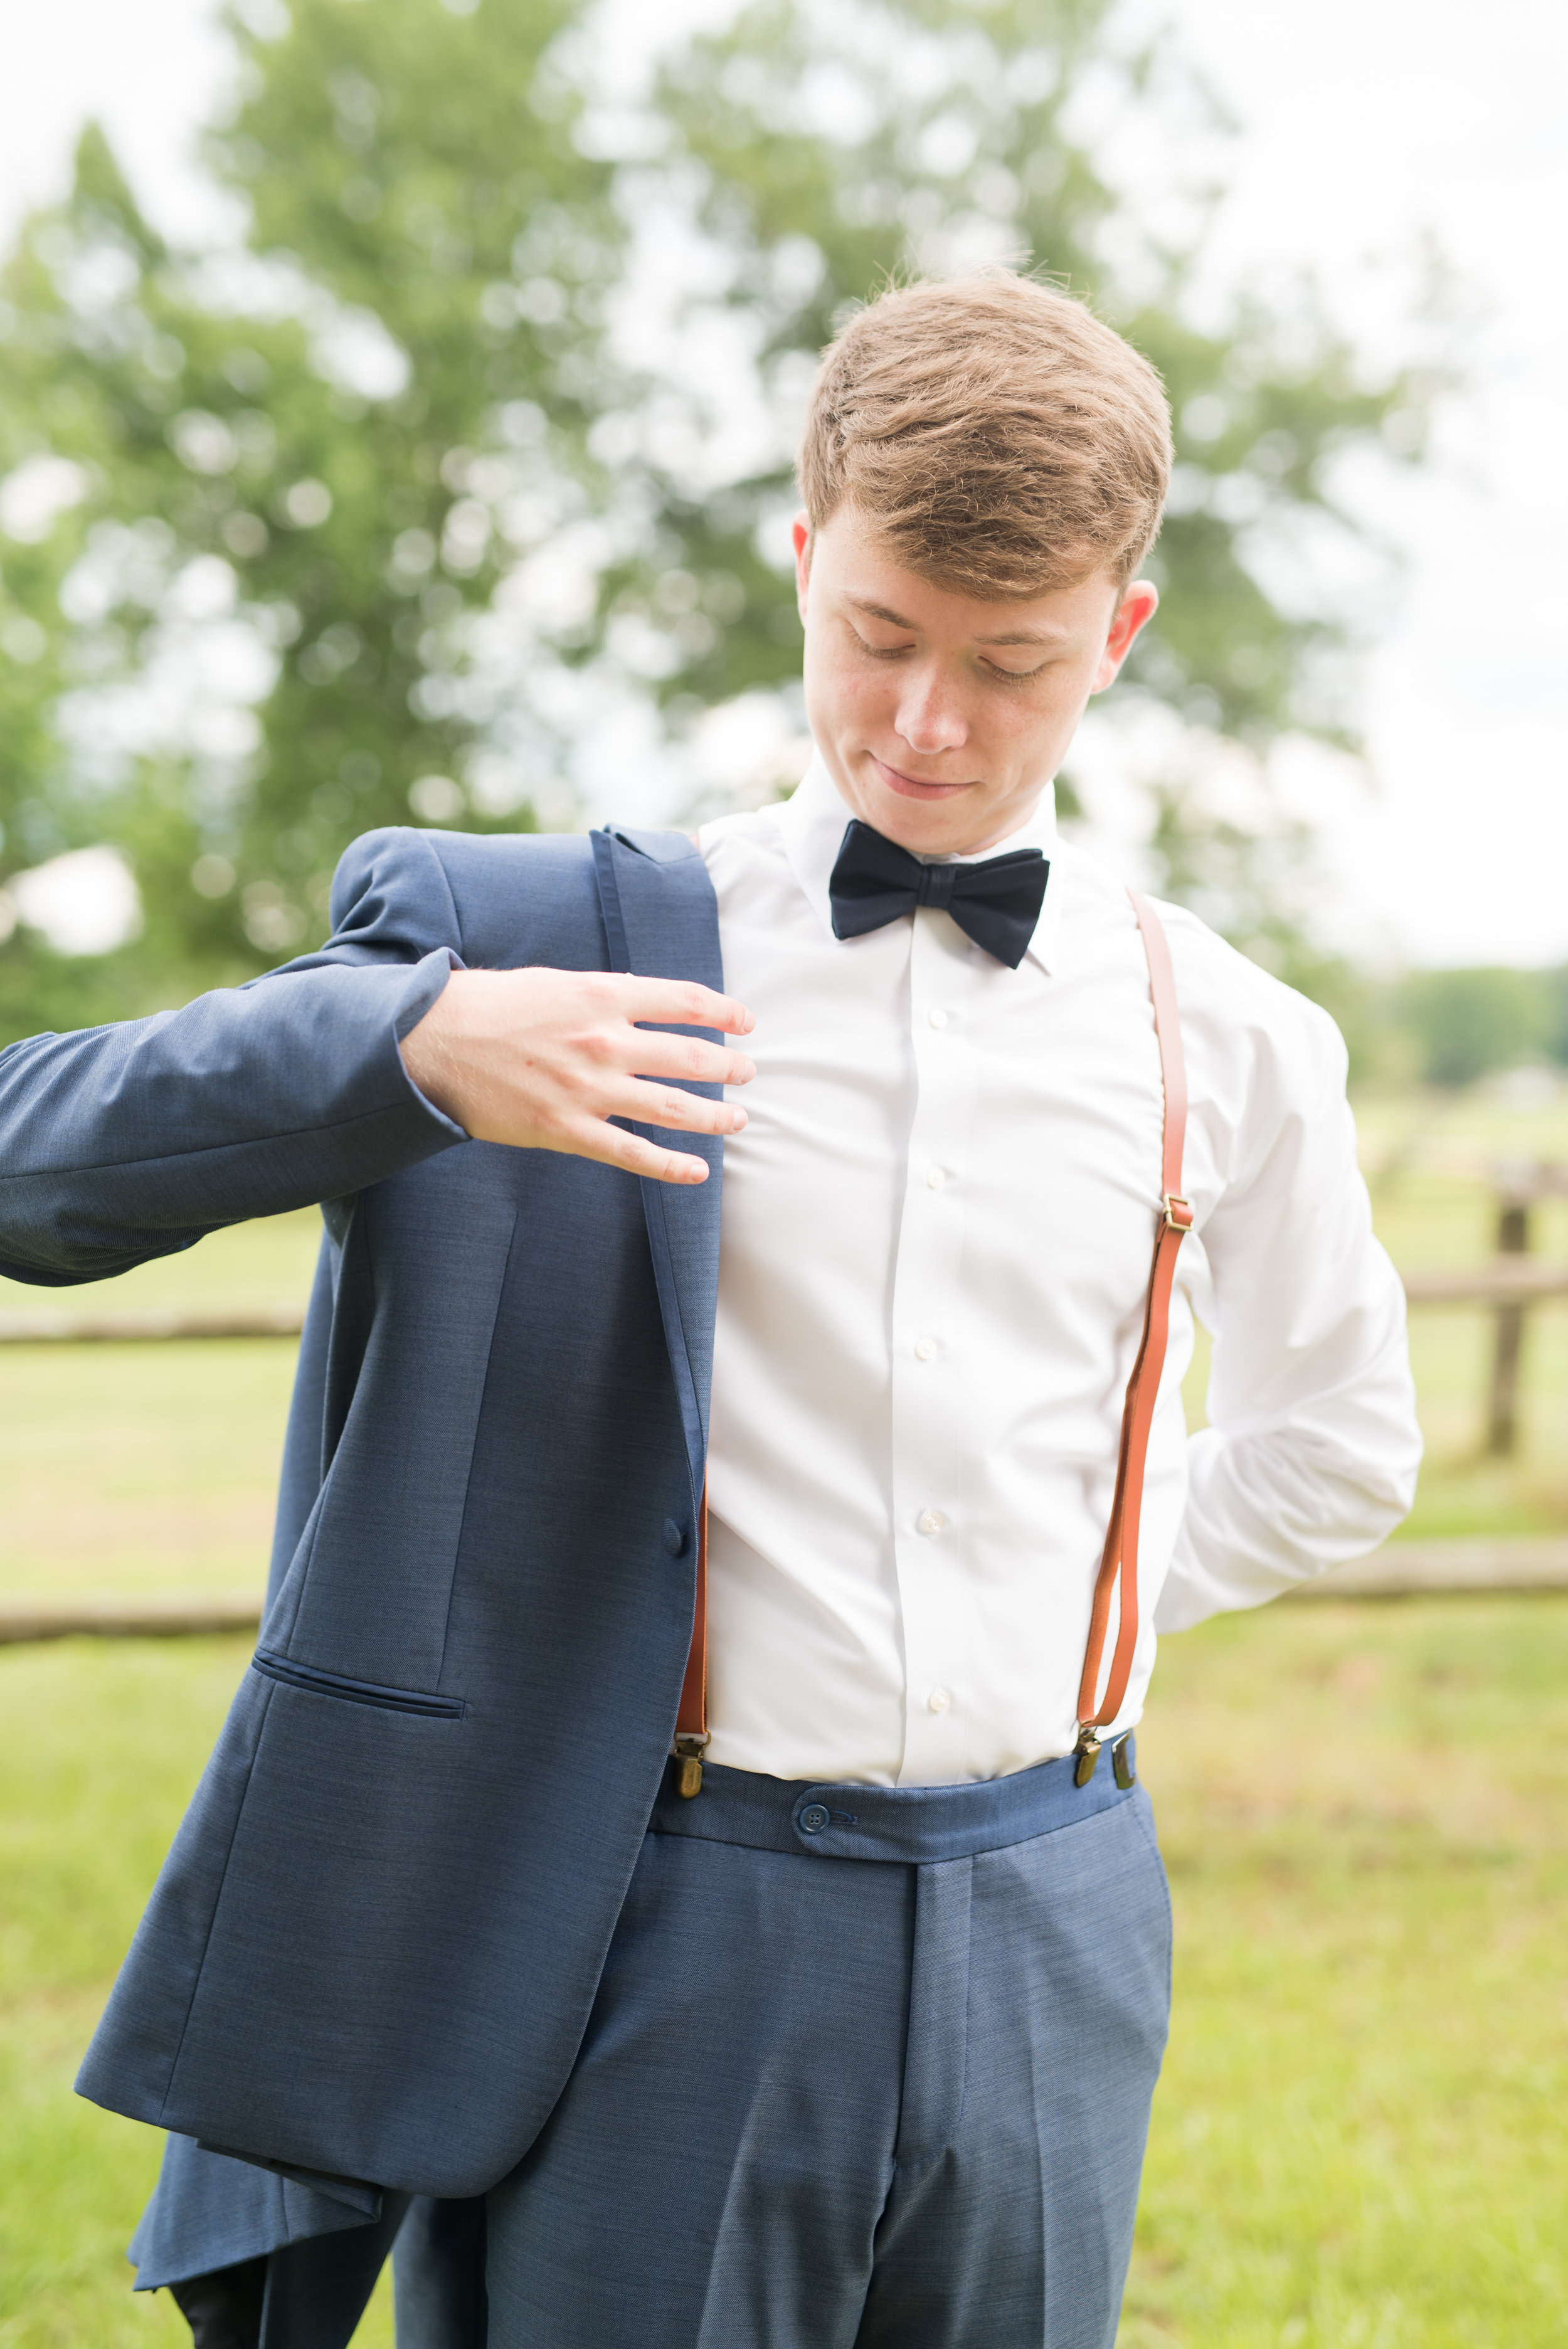 The Barn at Bridlewood wedding in Hattiesburg, Mississippi (MS) in June | Groom getting ready for wedding wearing suspenders and a bowtie